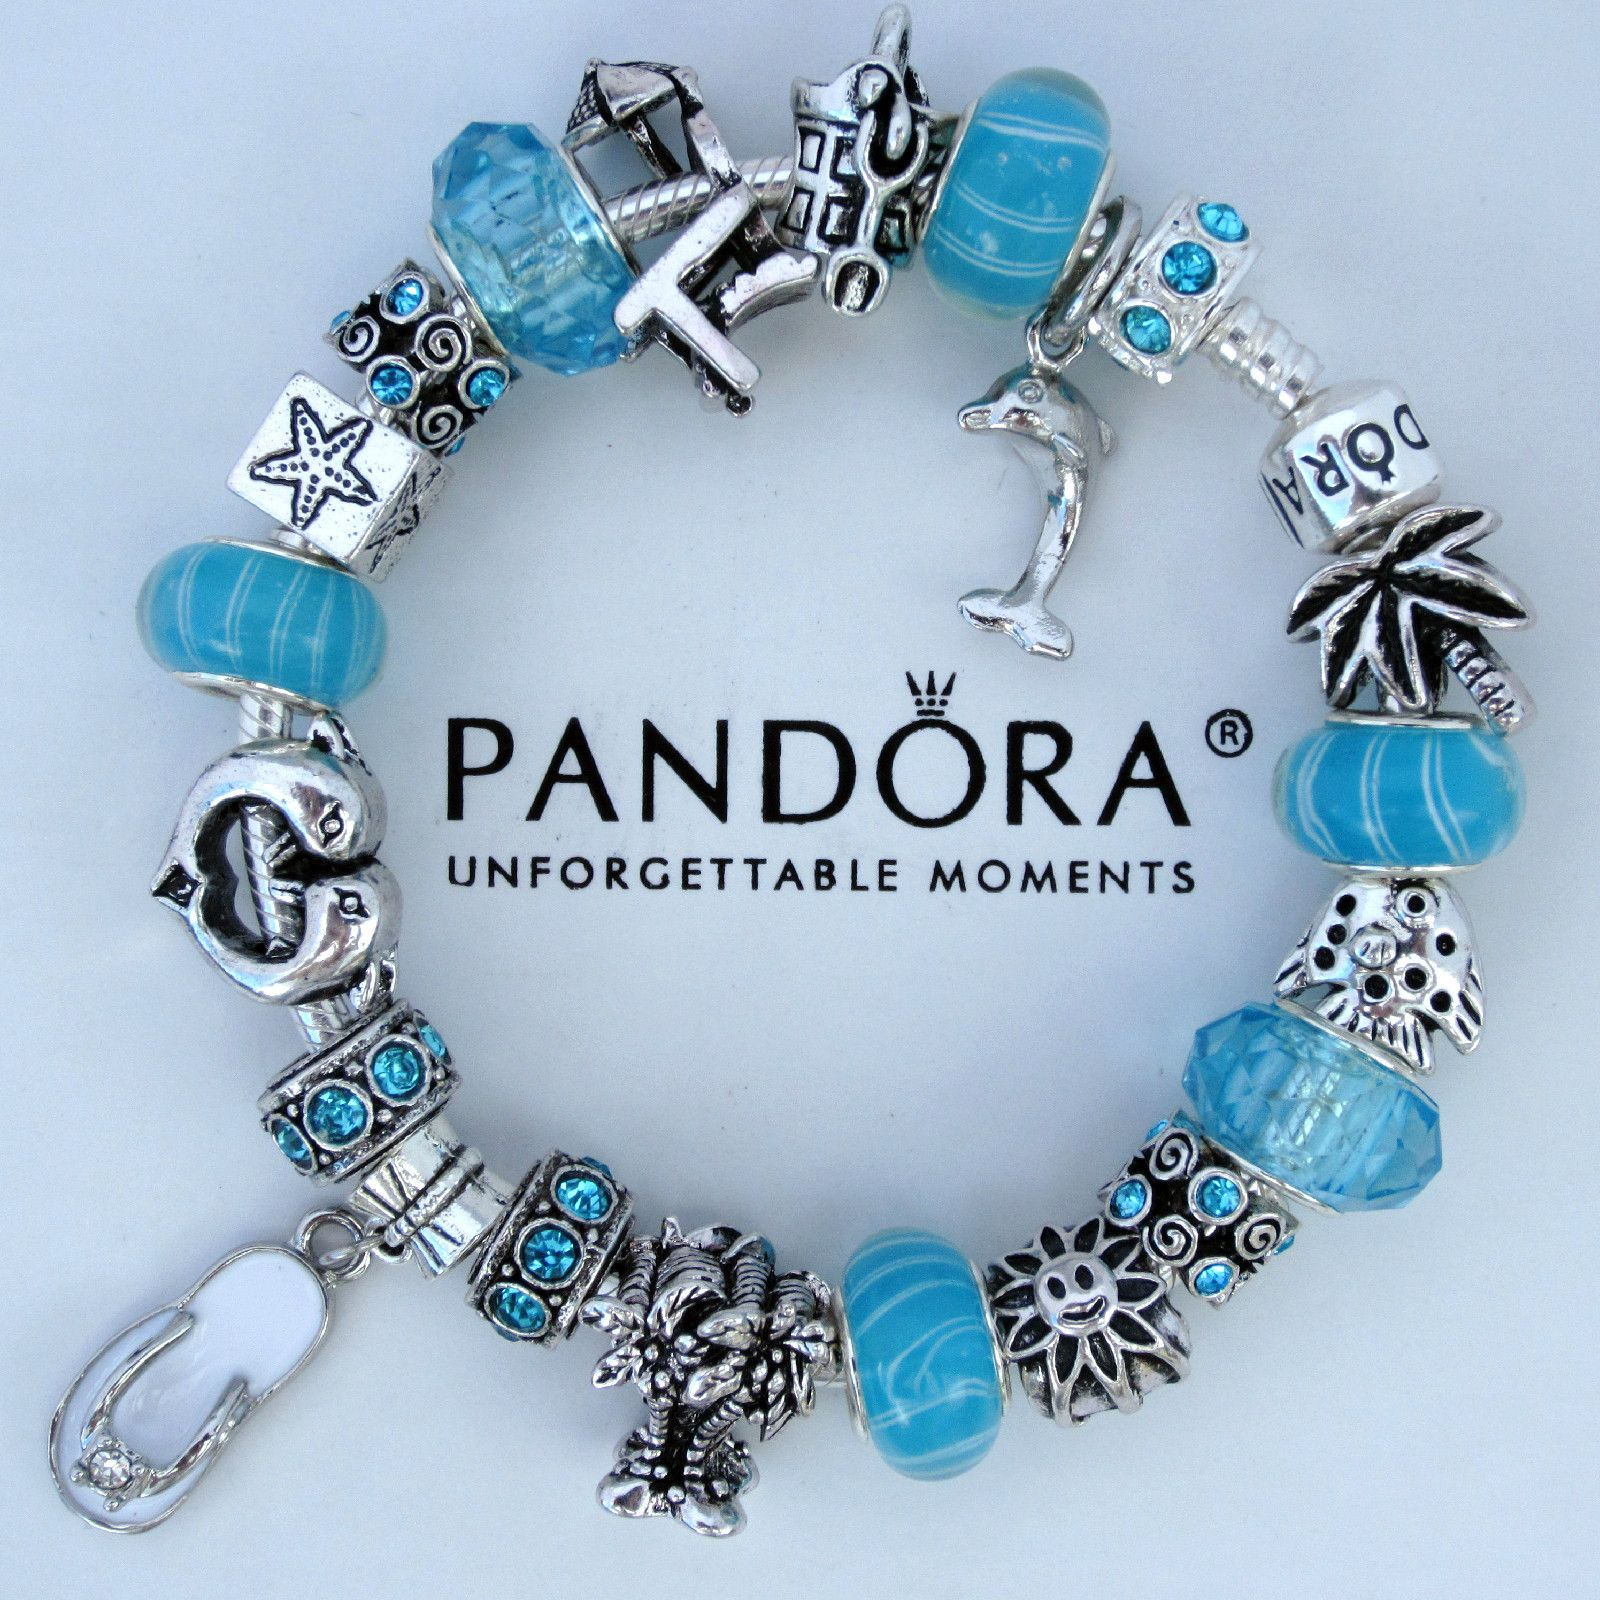 pin this graduation cute a charm pandorabracelet celebrate pandora bracelet with